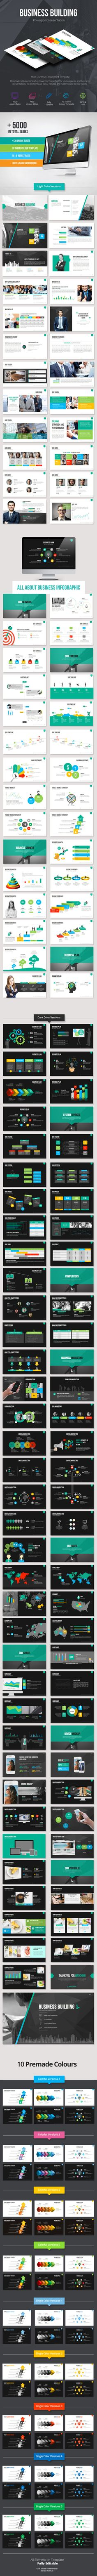 Business Building Powerpoint Presentation — Powerpoint PPT #problem analysis #colored • Available here → https://graphicriver.net/item/business-building-powerpoint-presentation/12641231?ref=pxcr